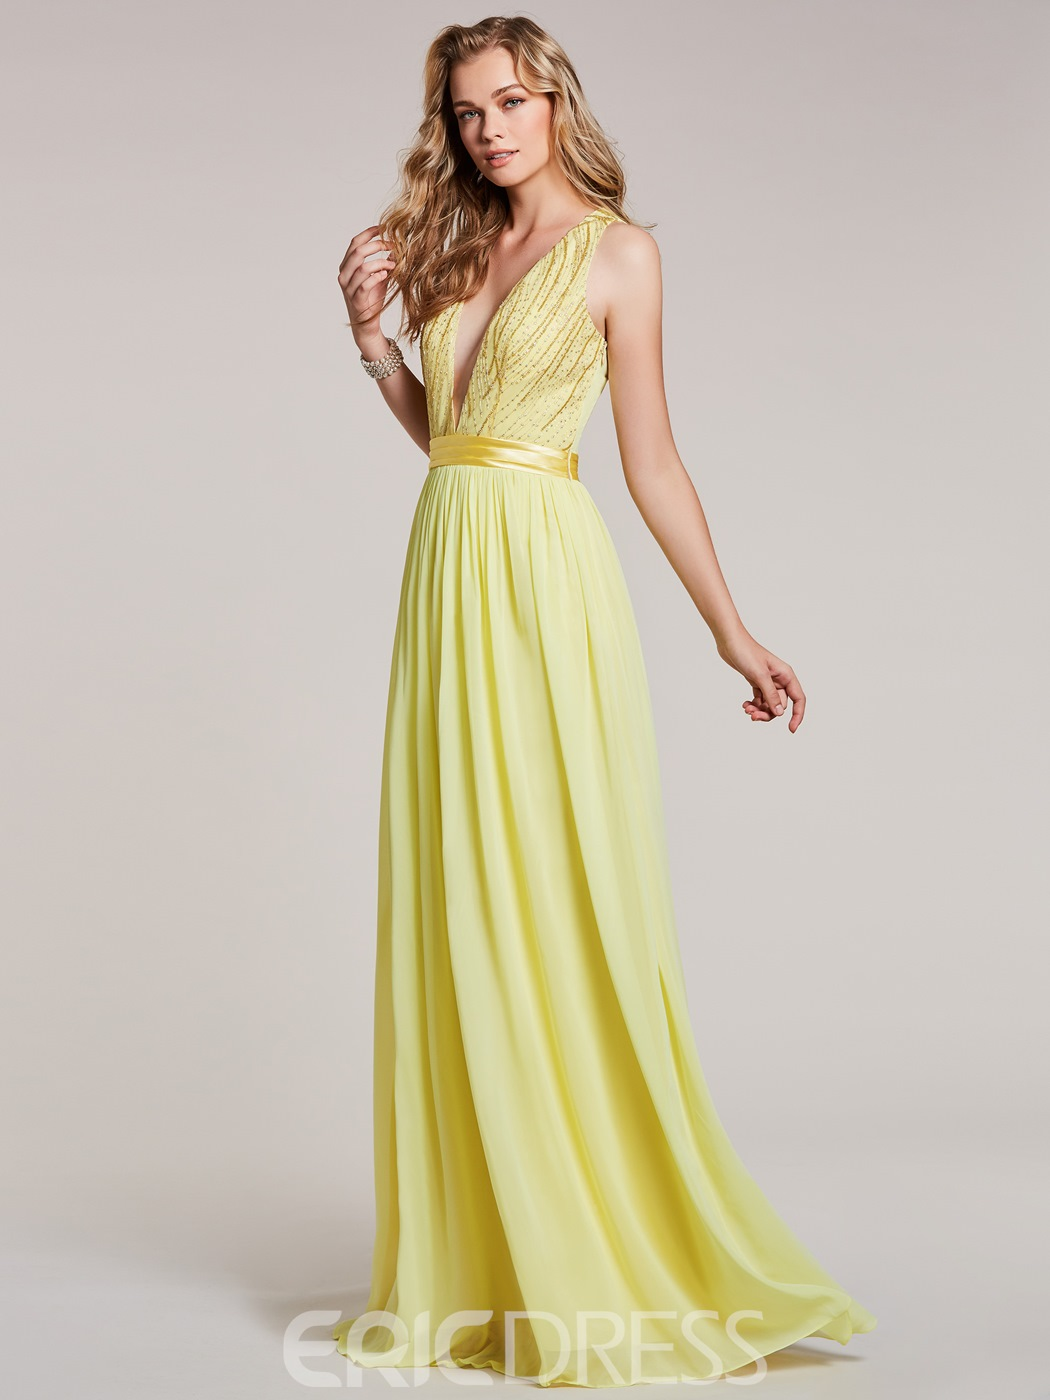 Ericdress V Neck Beaded A Line Long Prom Dress